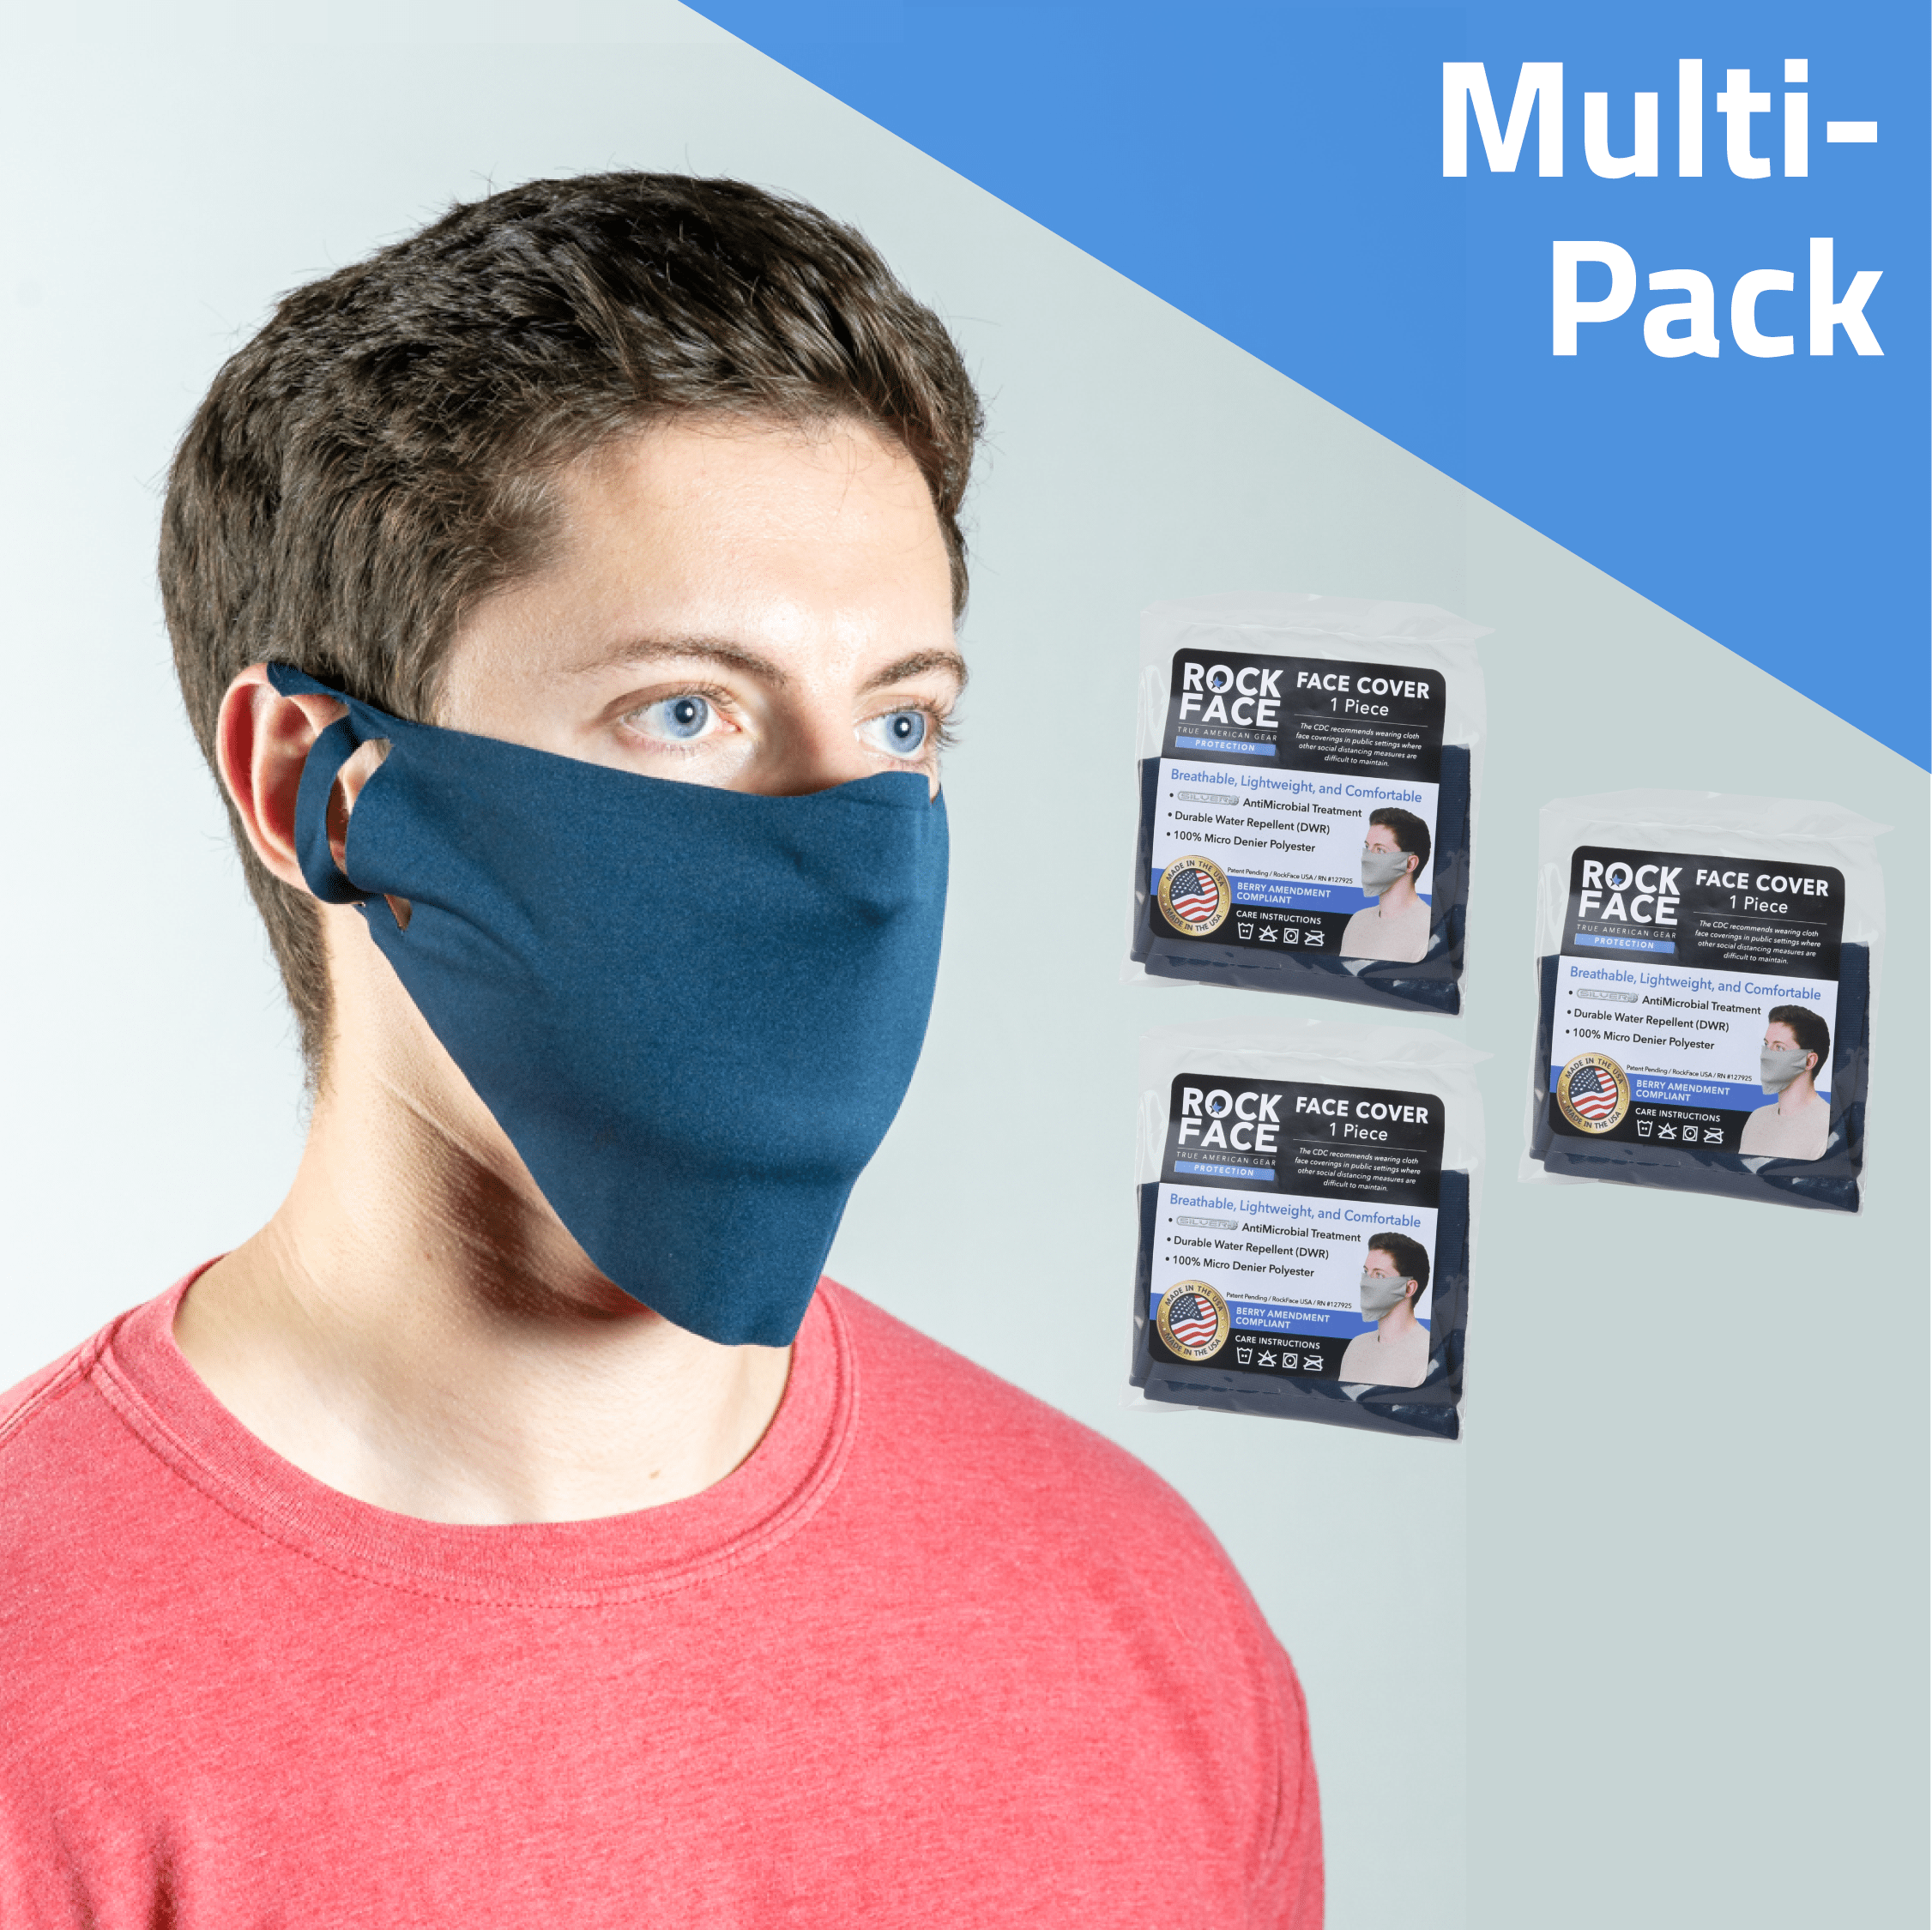 Active Face Cover Multipack - 3, 5 & 10 Count - RockFace USA